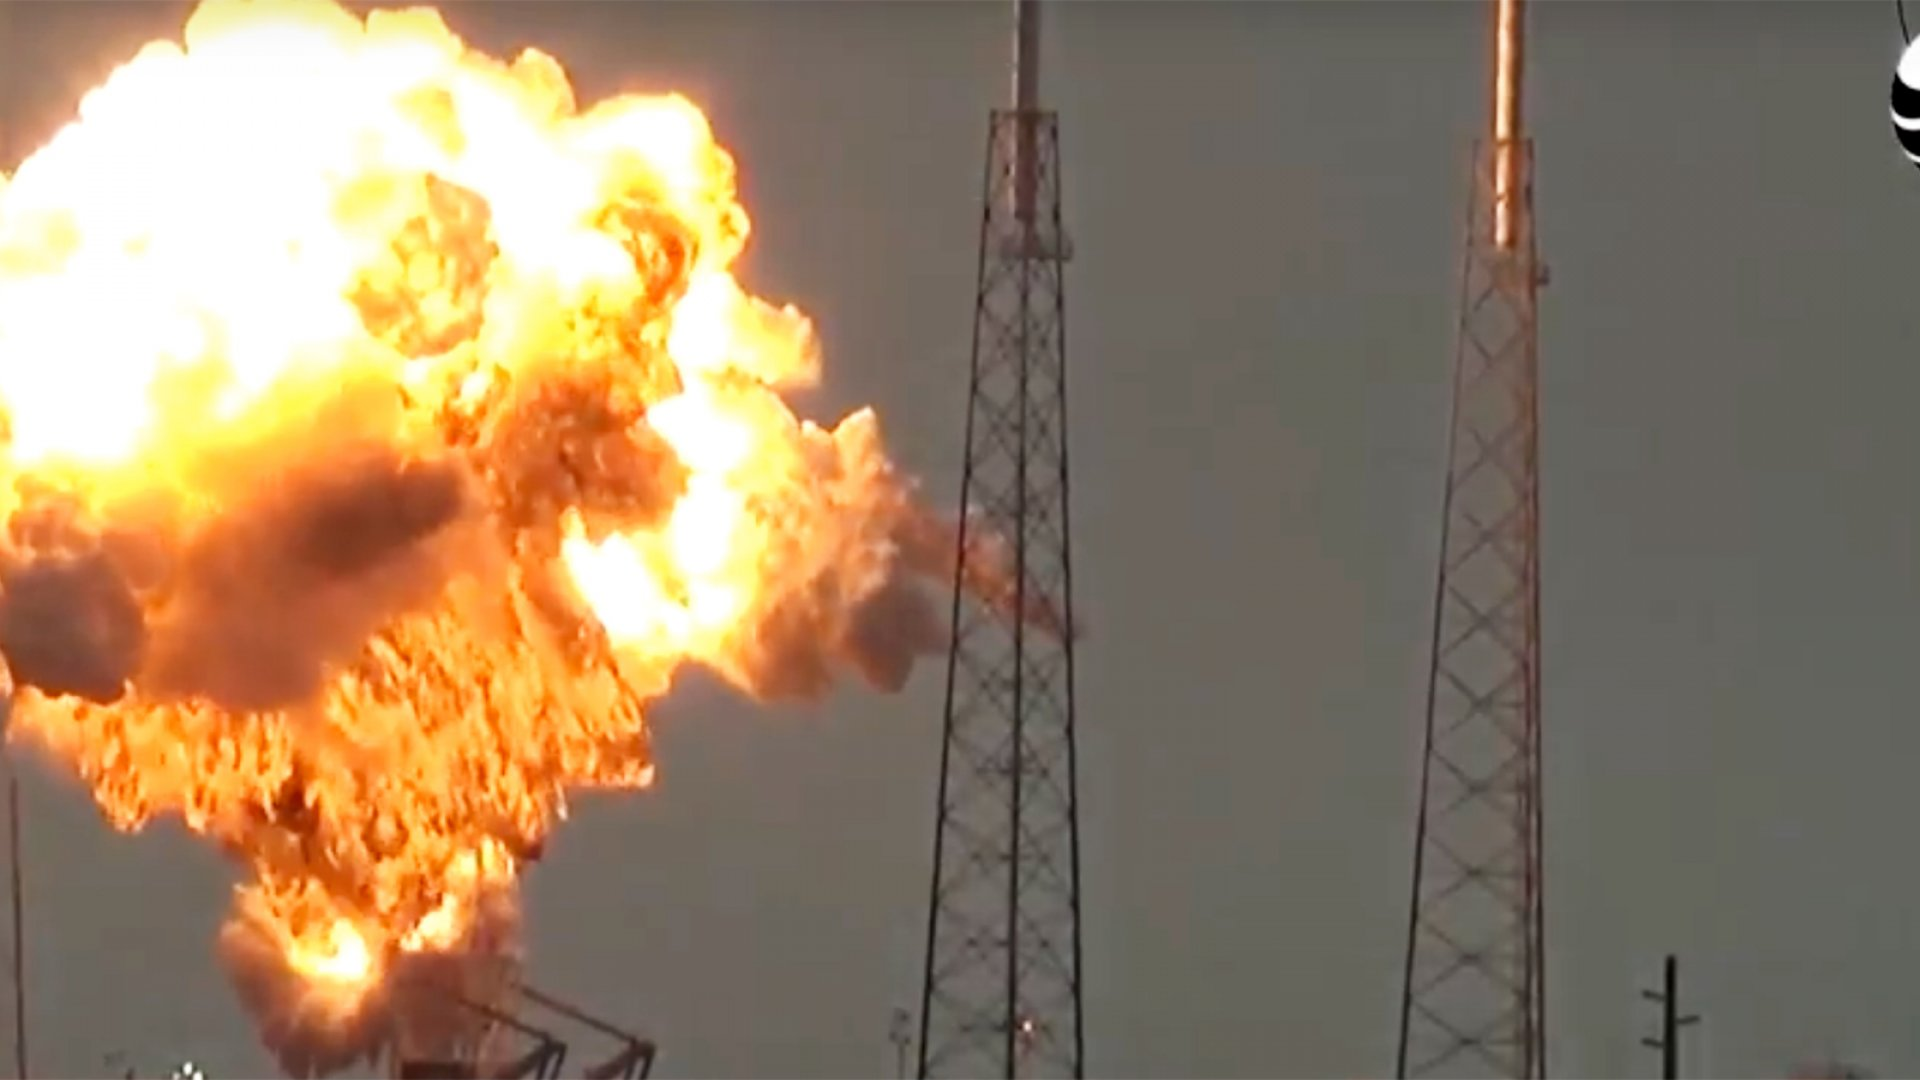 A video captures the explosion of SpaceX's Falcon 9 on Sept. 1, 2016. The ship was undergoing a preliminary static fire test.